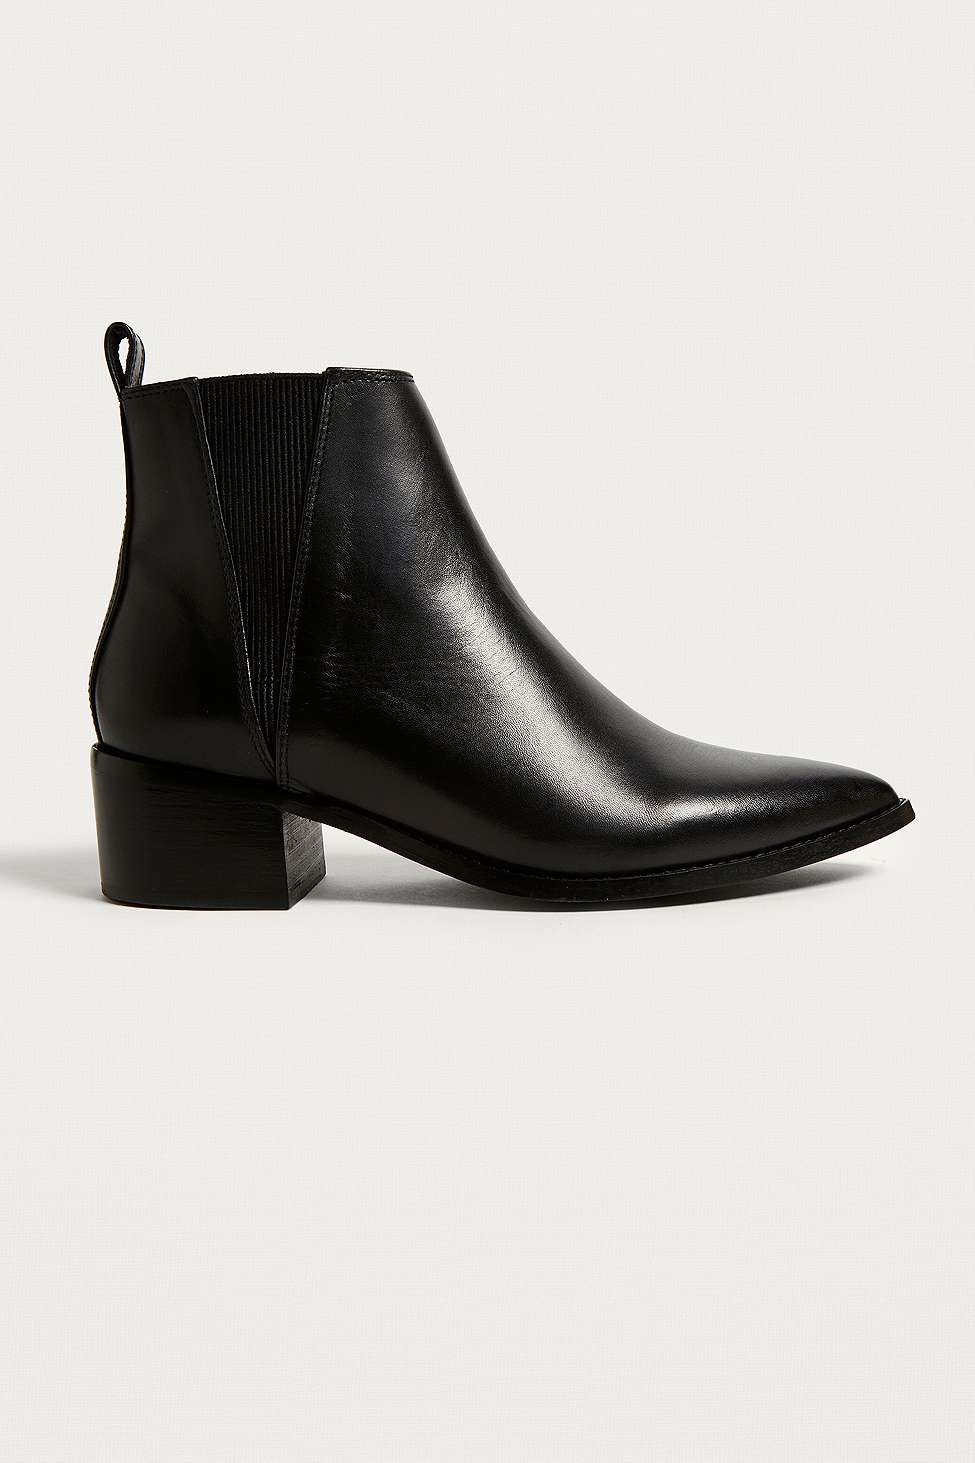 Slide View: 1: E8 by Miista Ula Chelsea Boots